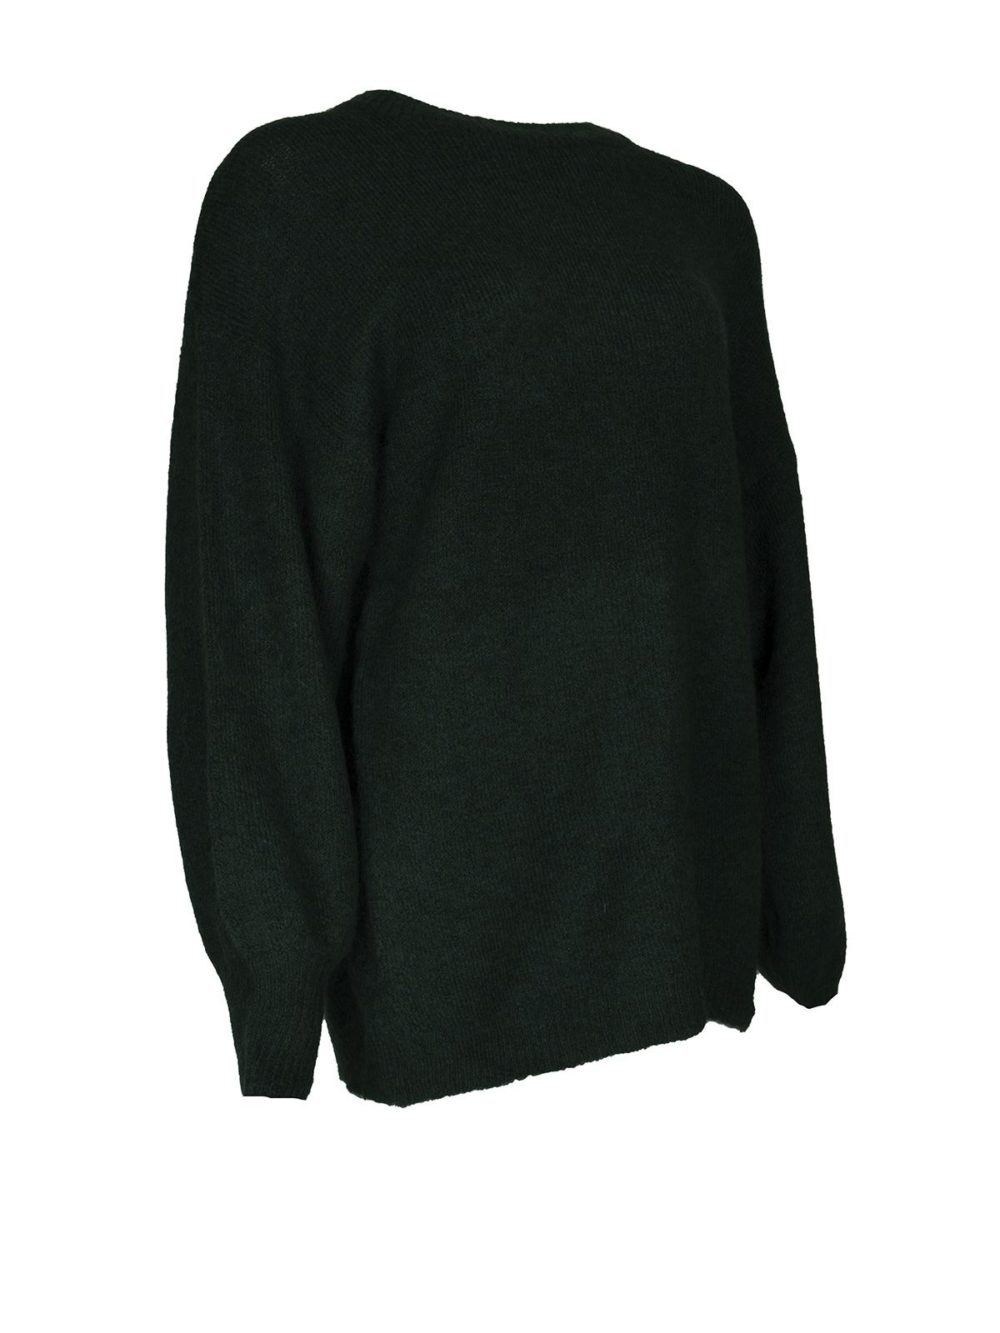 Amara Jumper ICHI Katie Kerr Women's Clothing